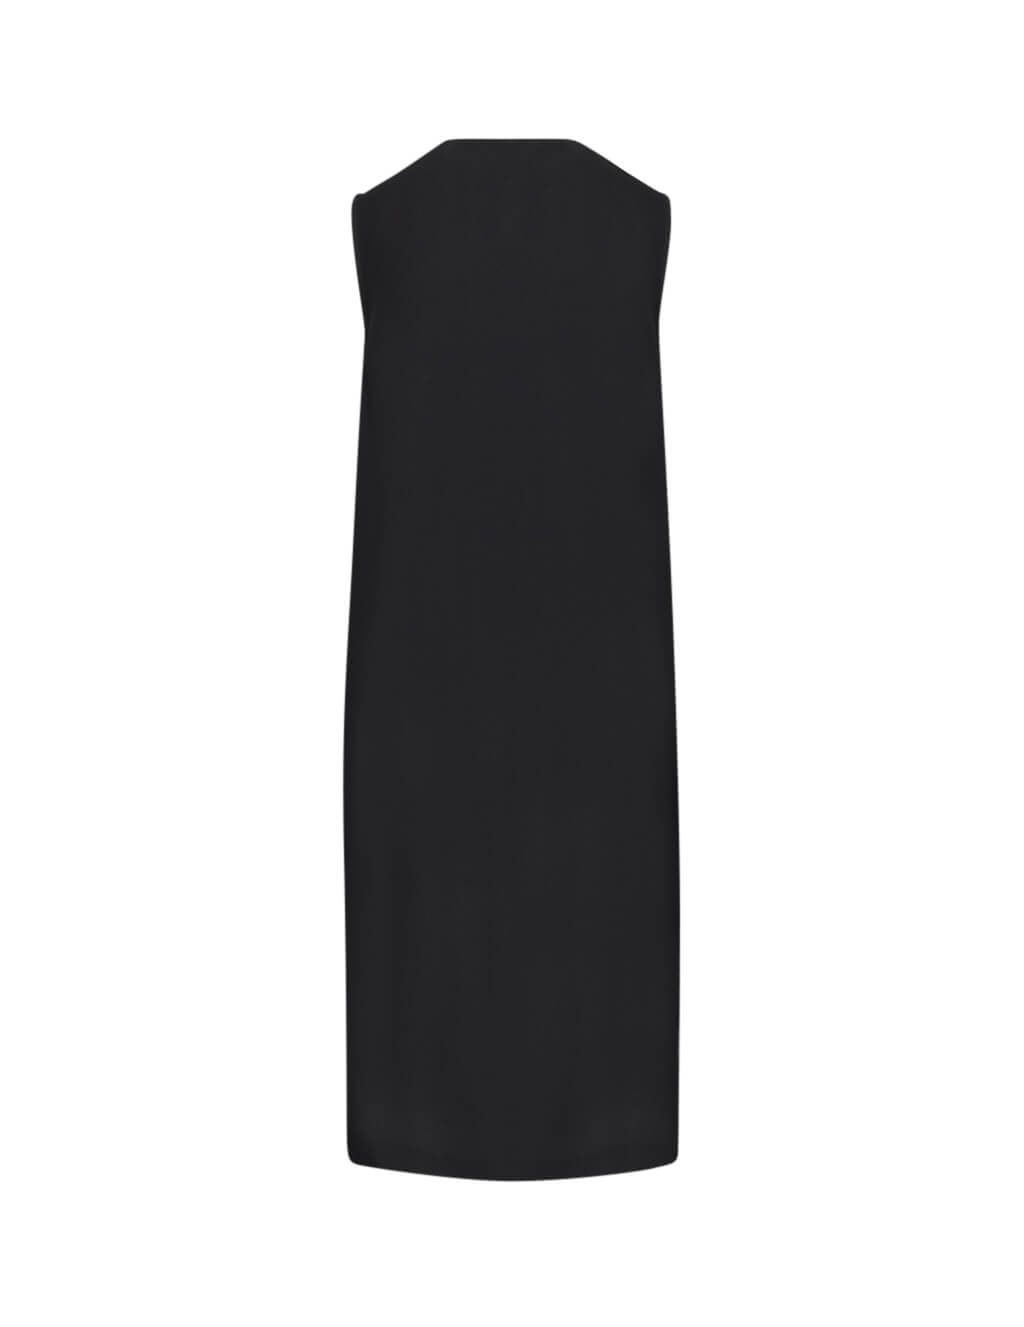 McQ Alexander McQueen Women's Giulio Fashion Black Hybrid Tank Dress 567009RNF051038